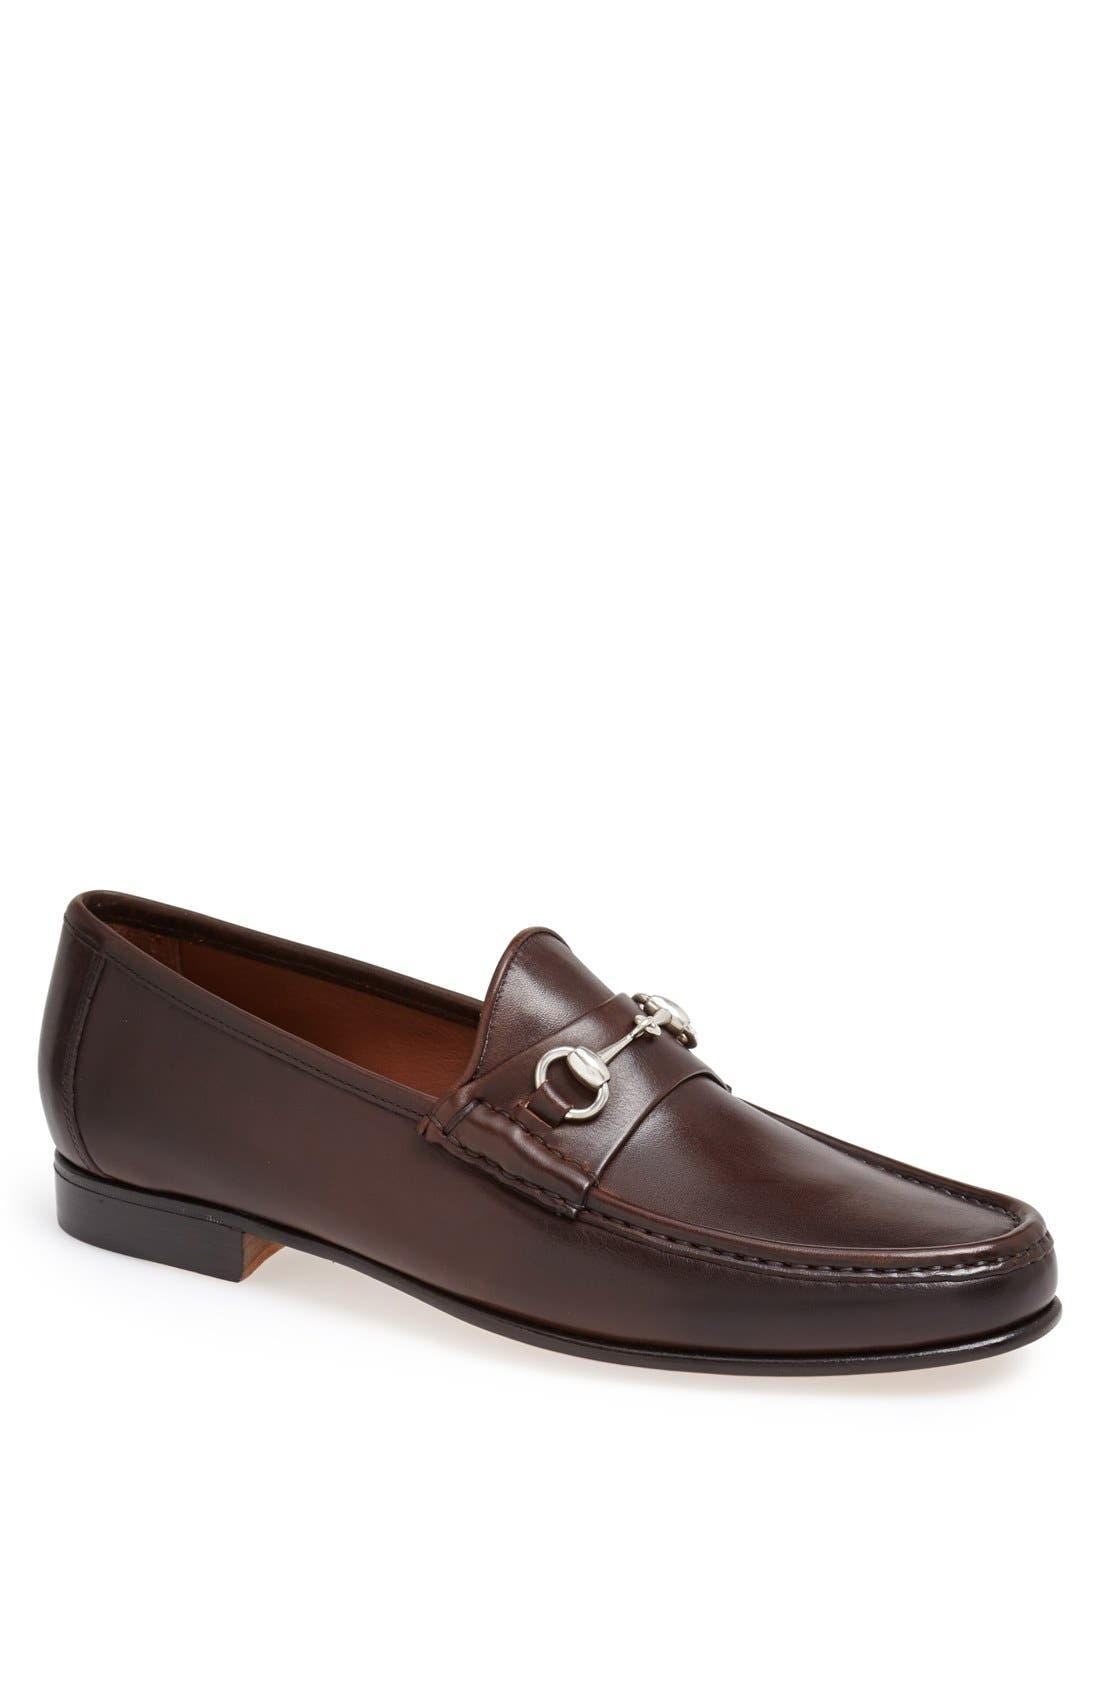 Verona II Bit Loafer,                         Main,                         color, Brown/ Brown